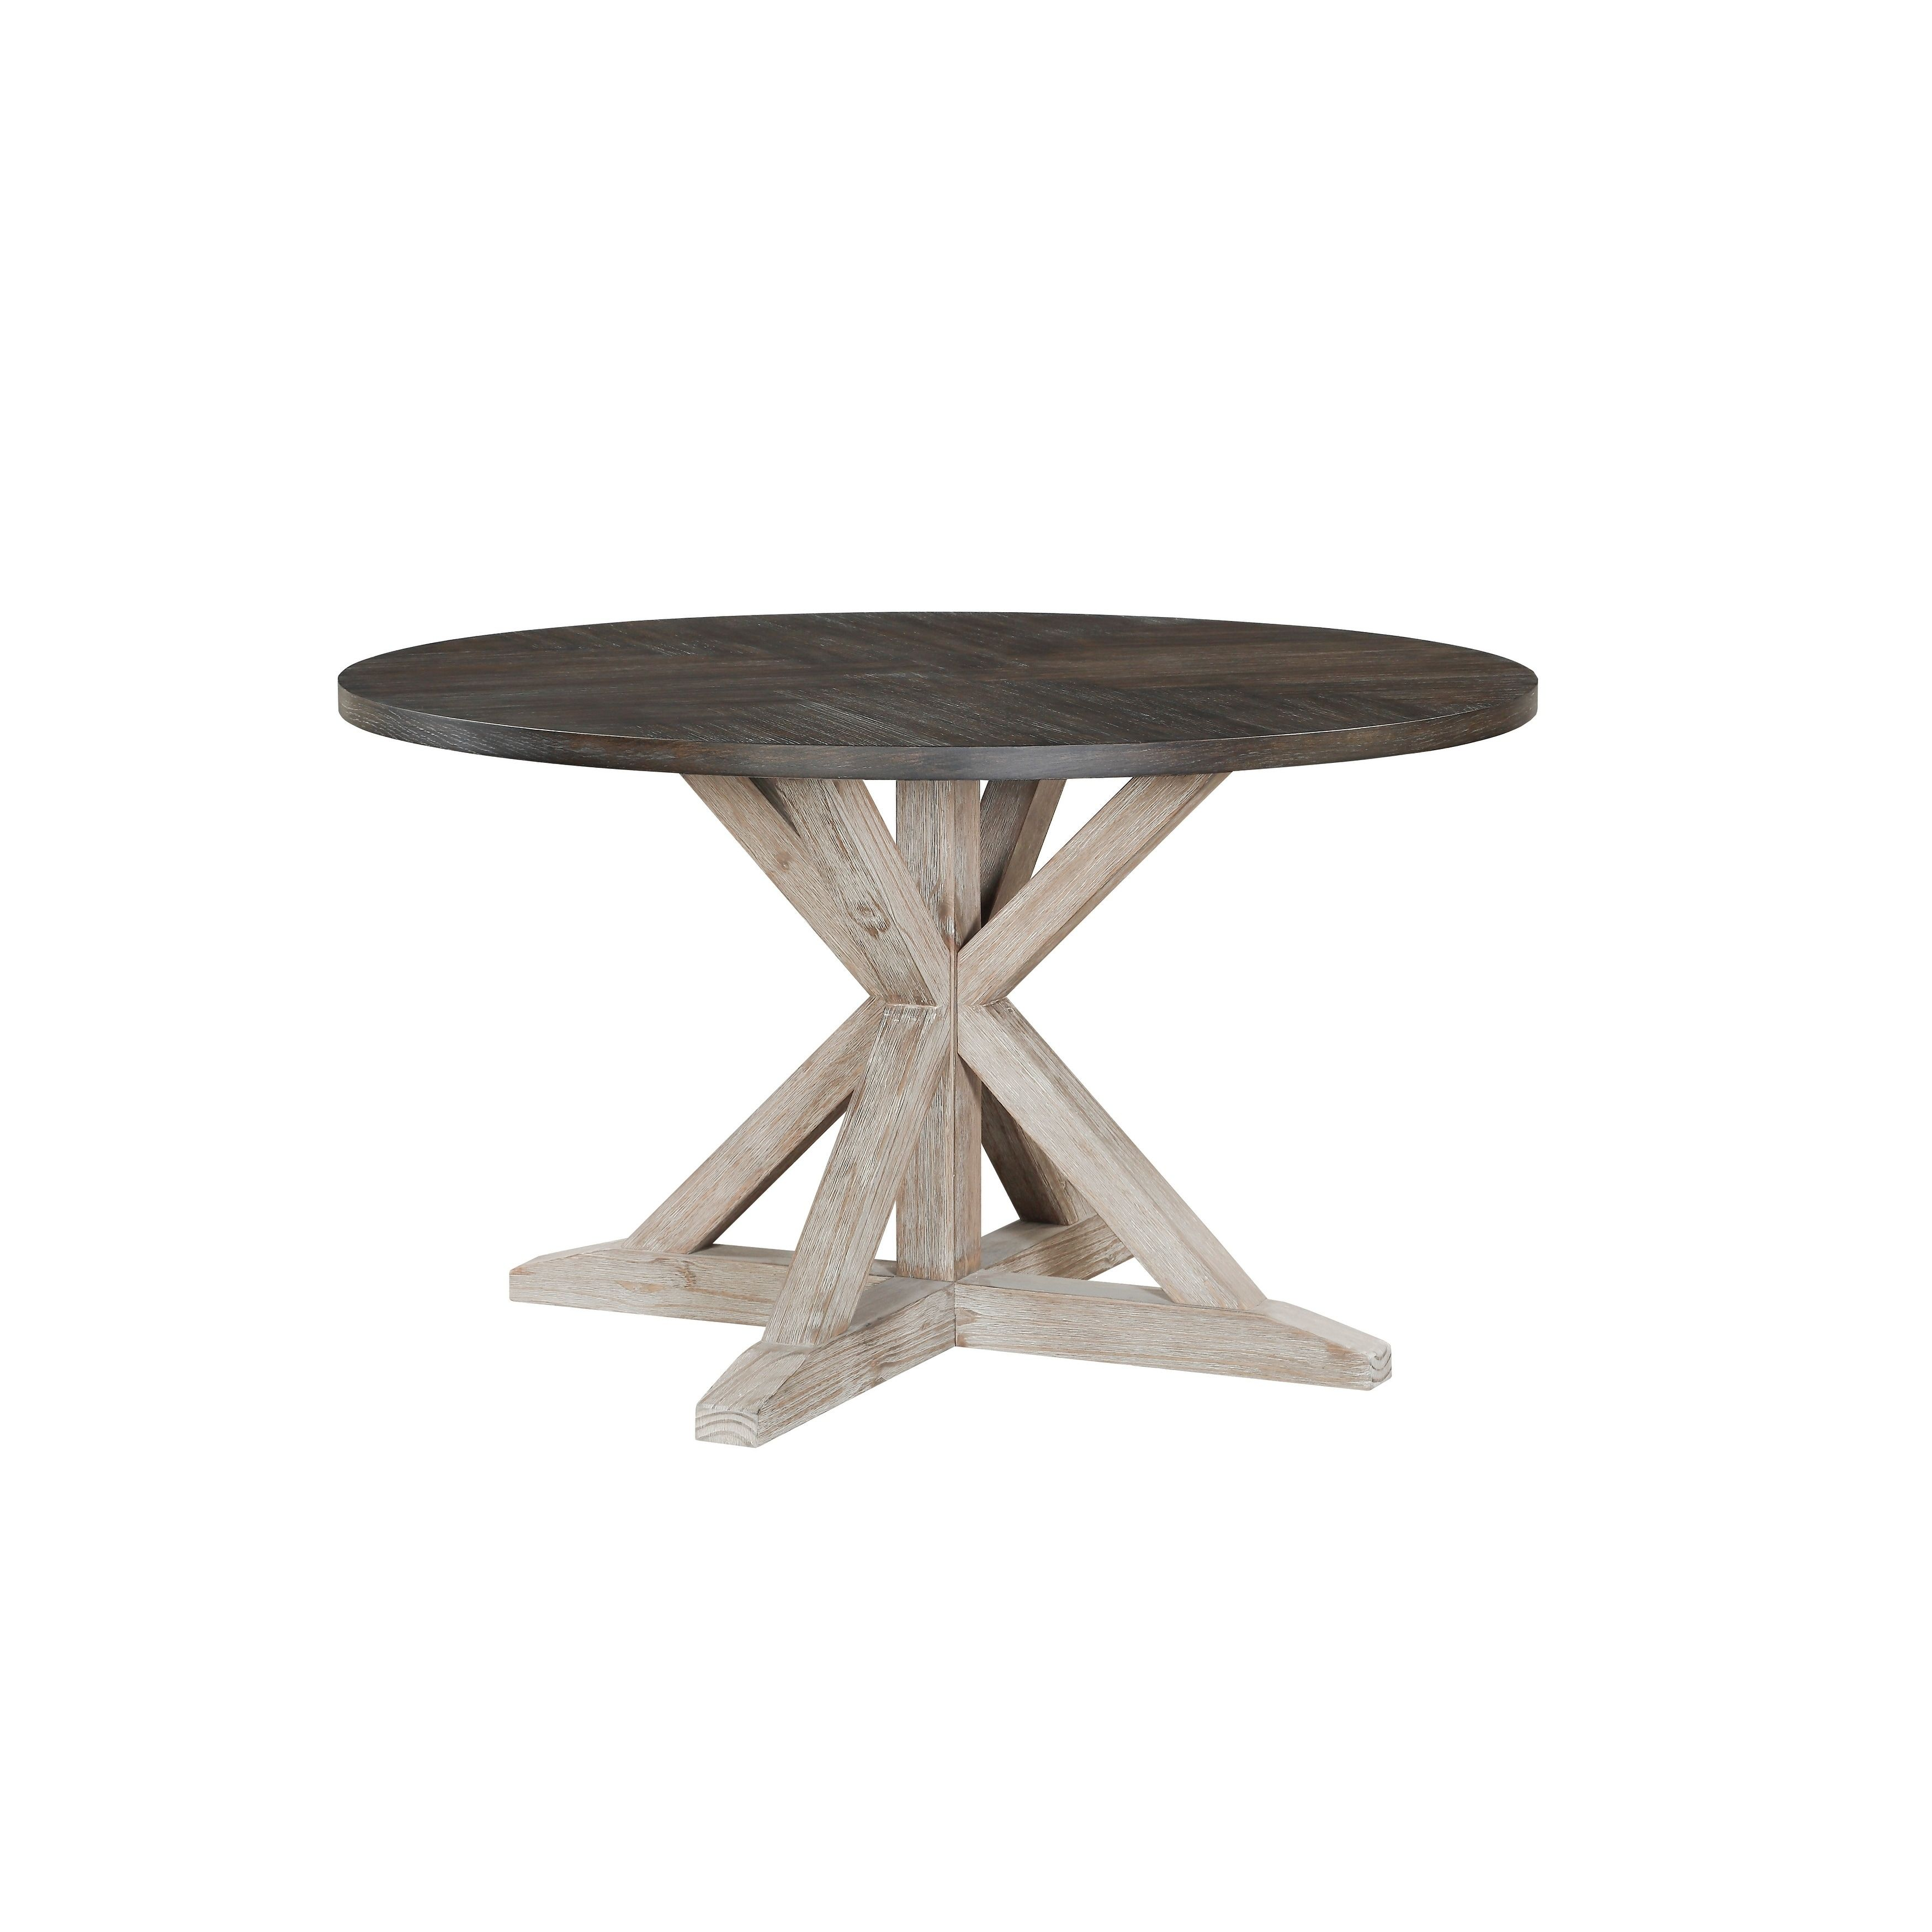 Standard Furniture Jefferson Round Dining Table Distressed Brown